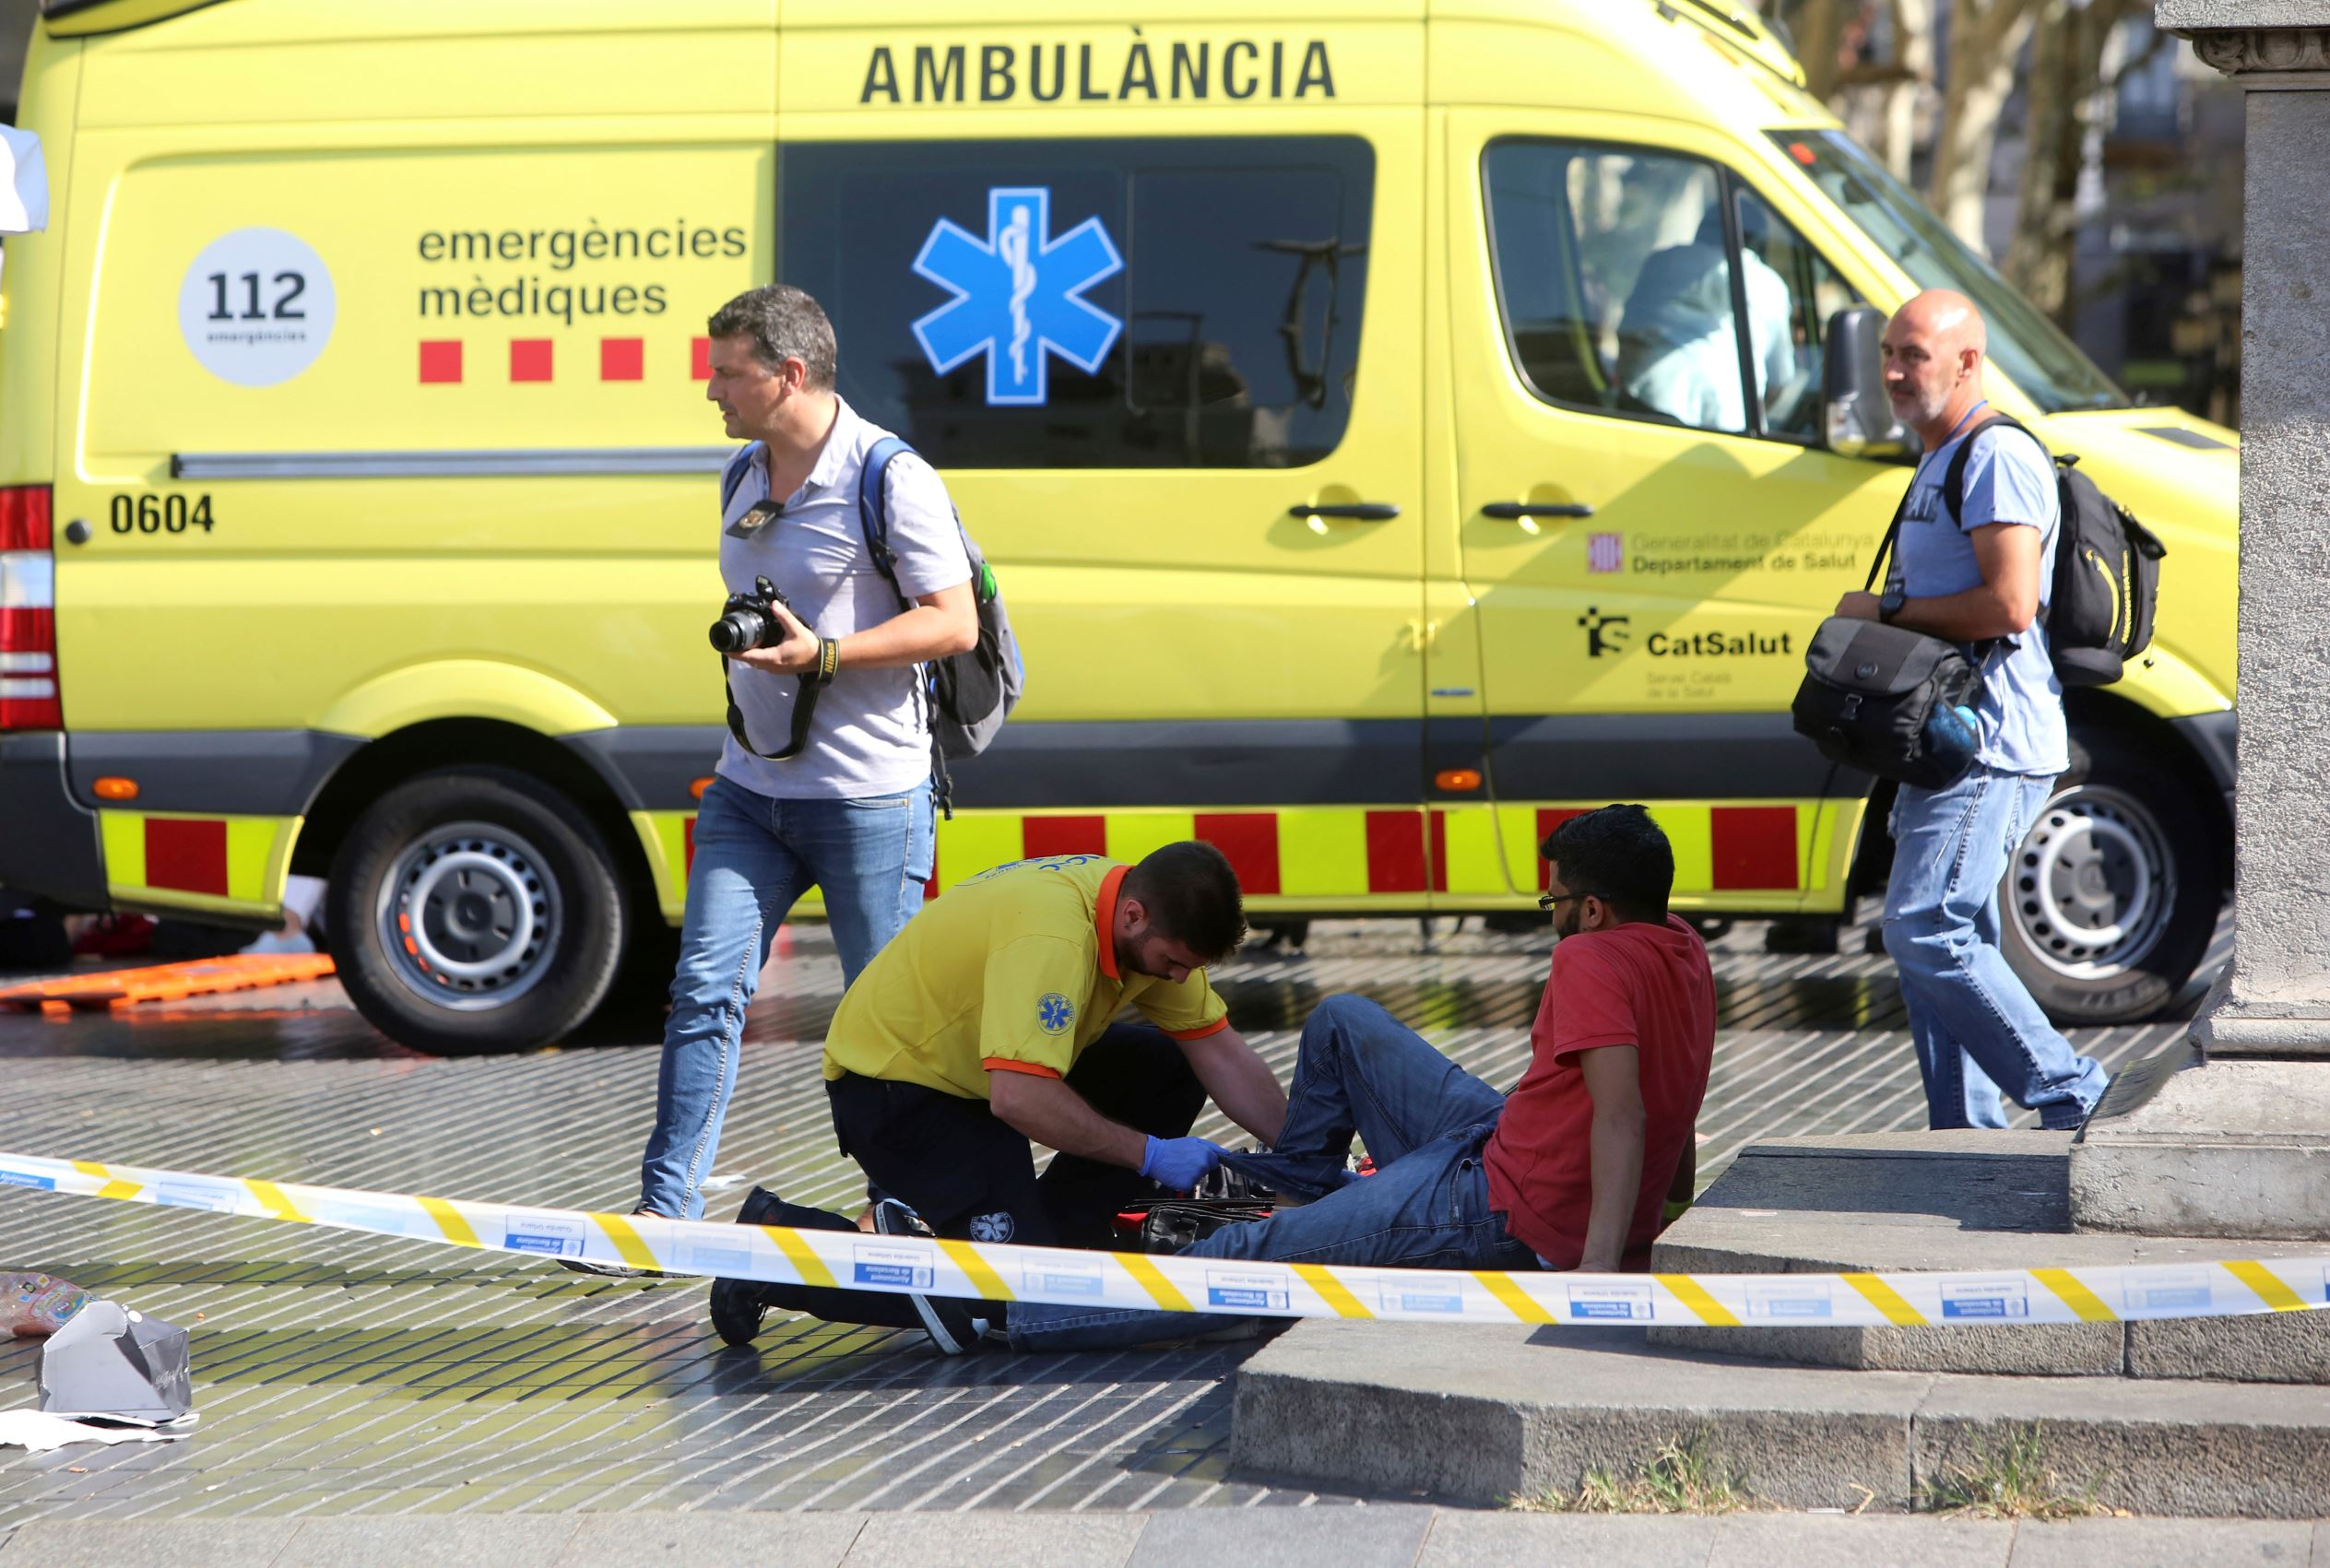 Barcelona terror: Police shoot-out after second possible attack